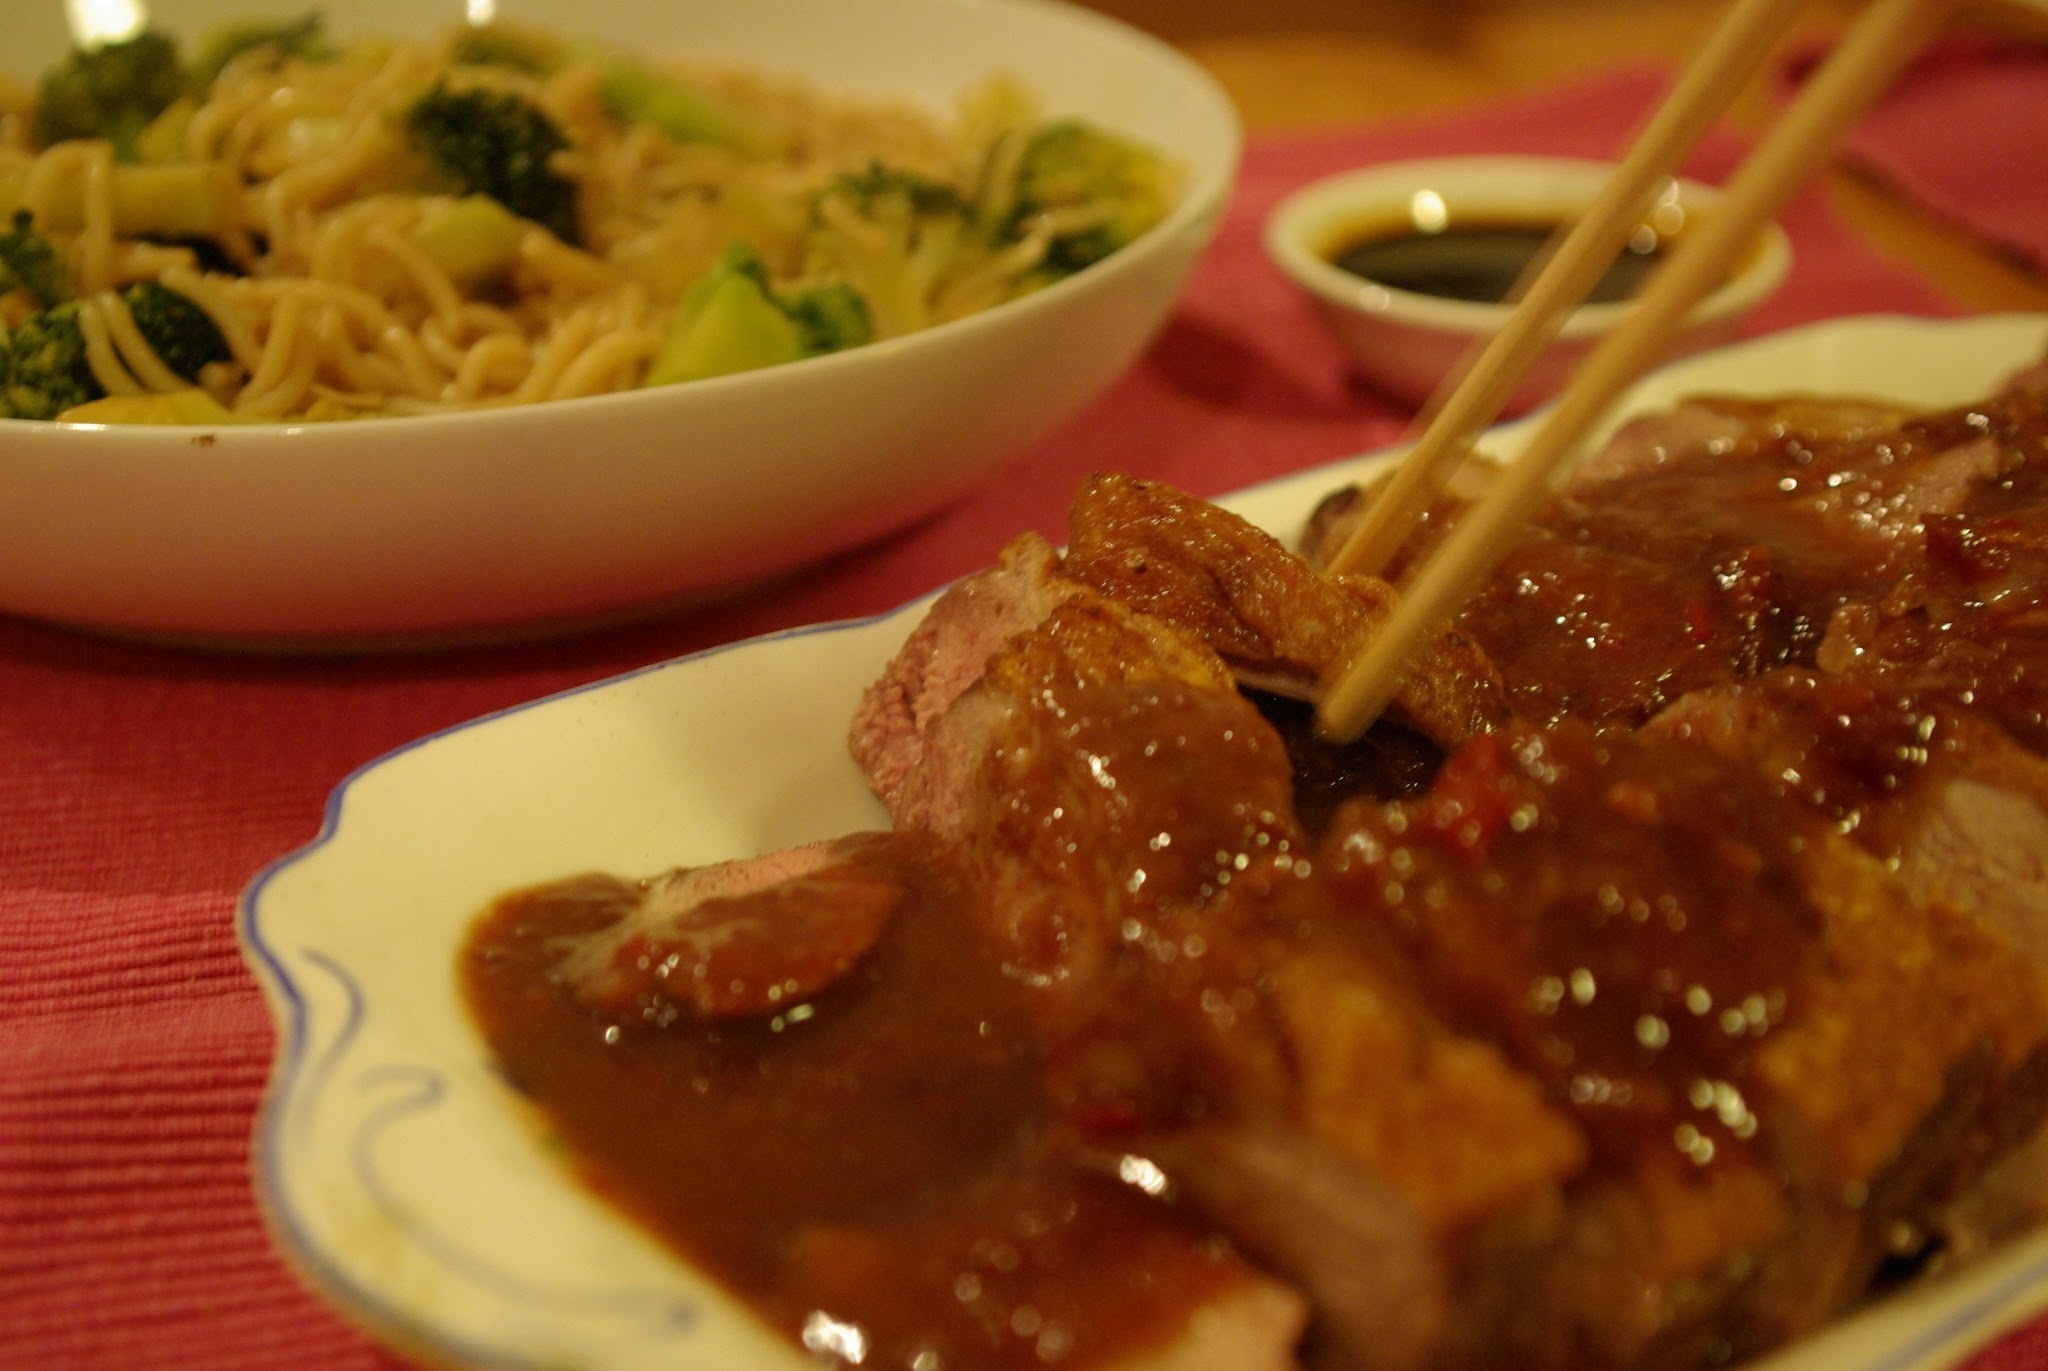 Duck in plum sauce and broccoli with noodles